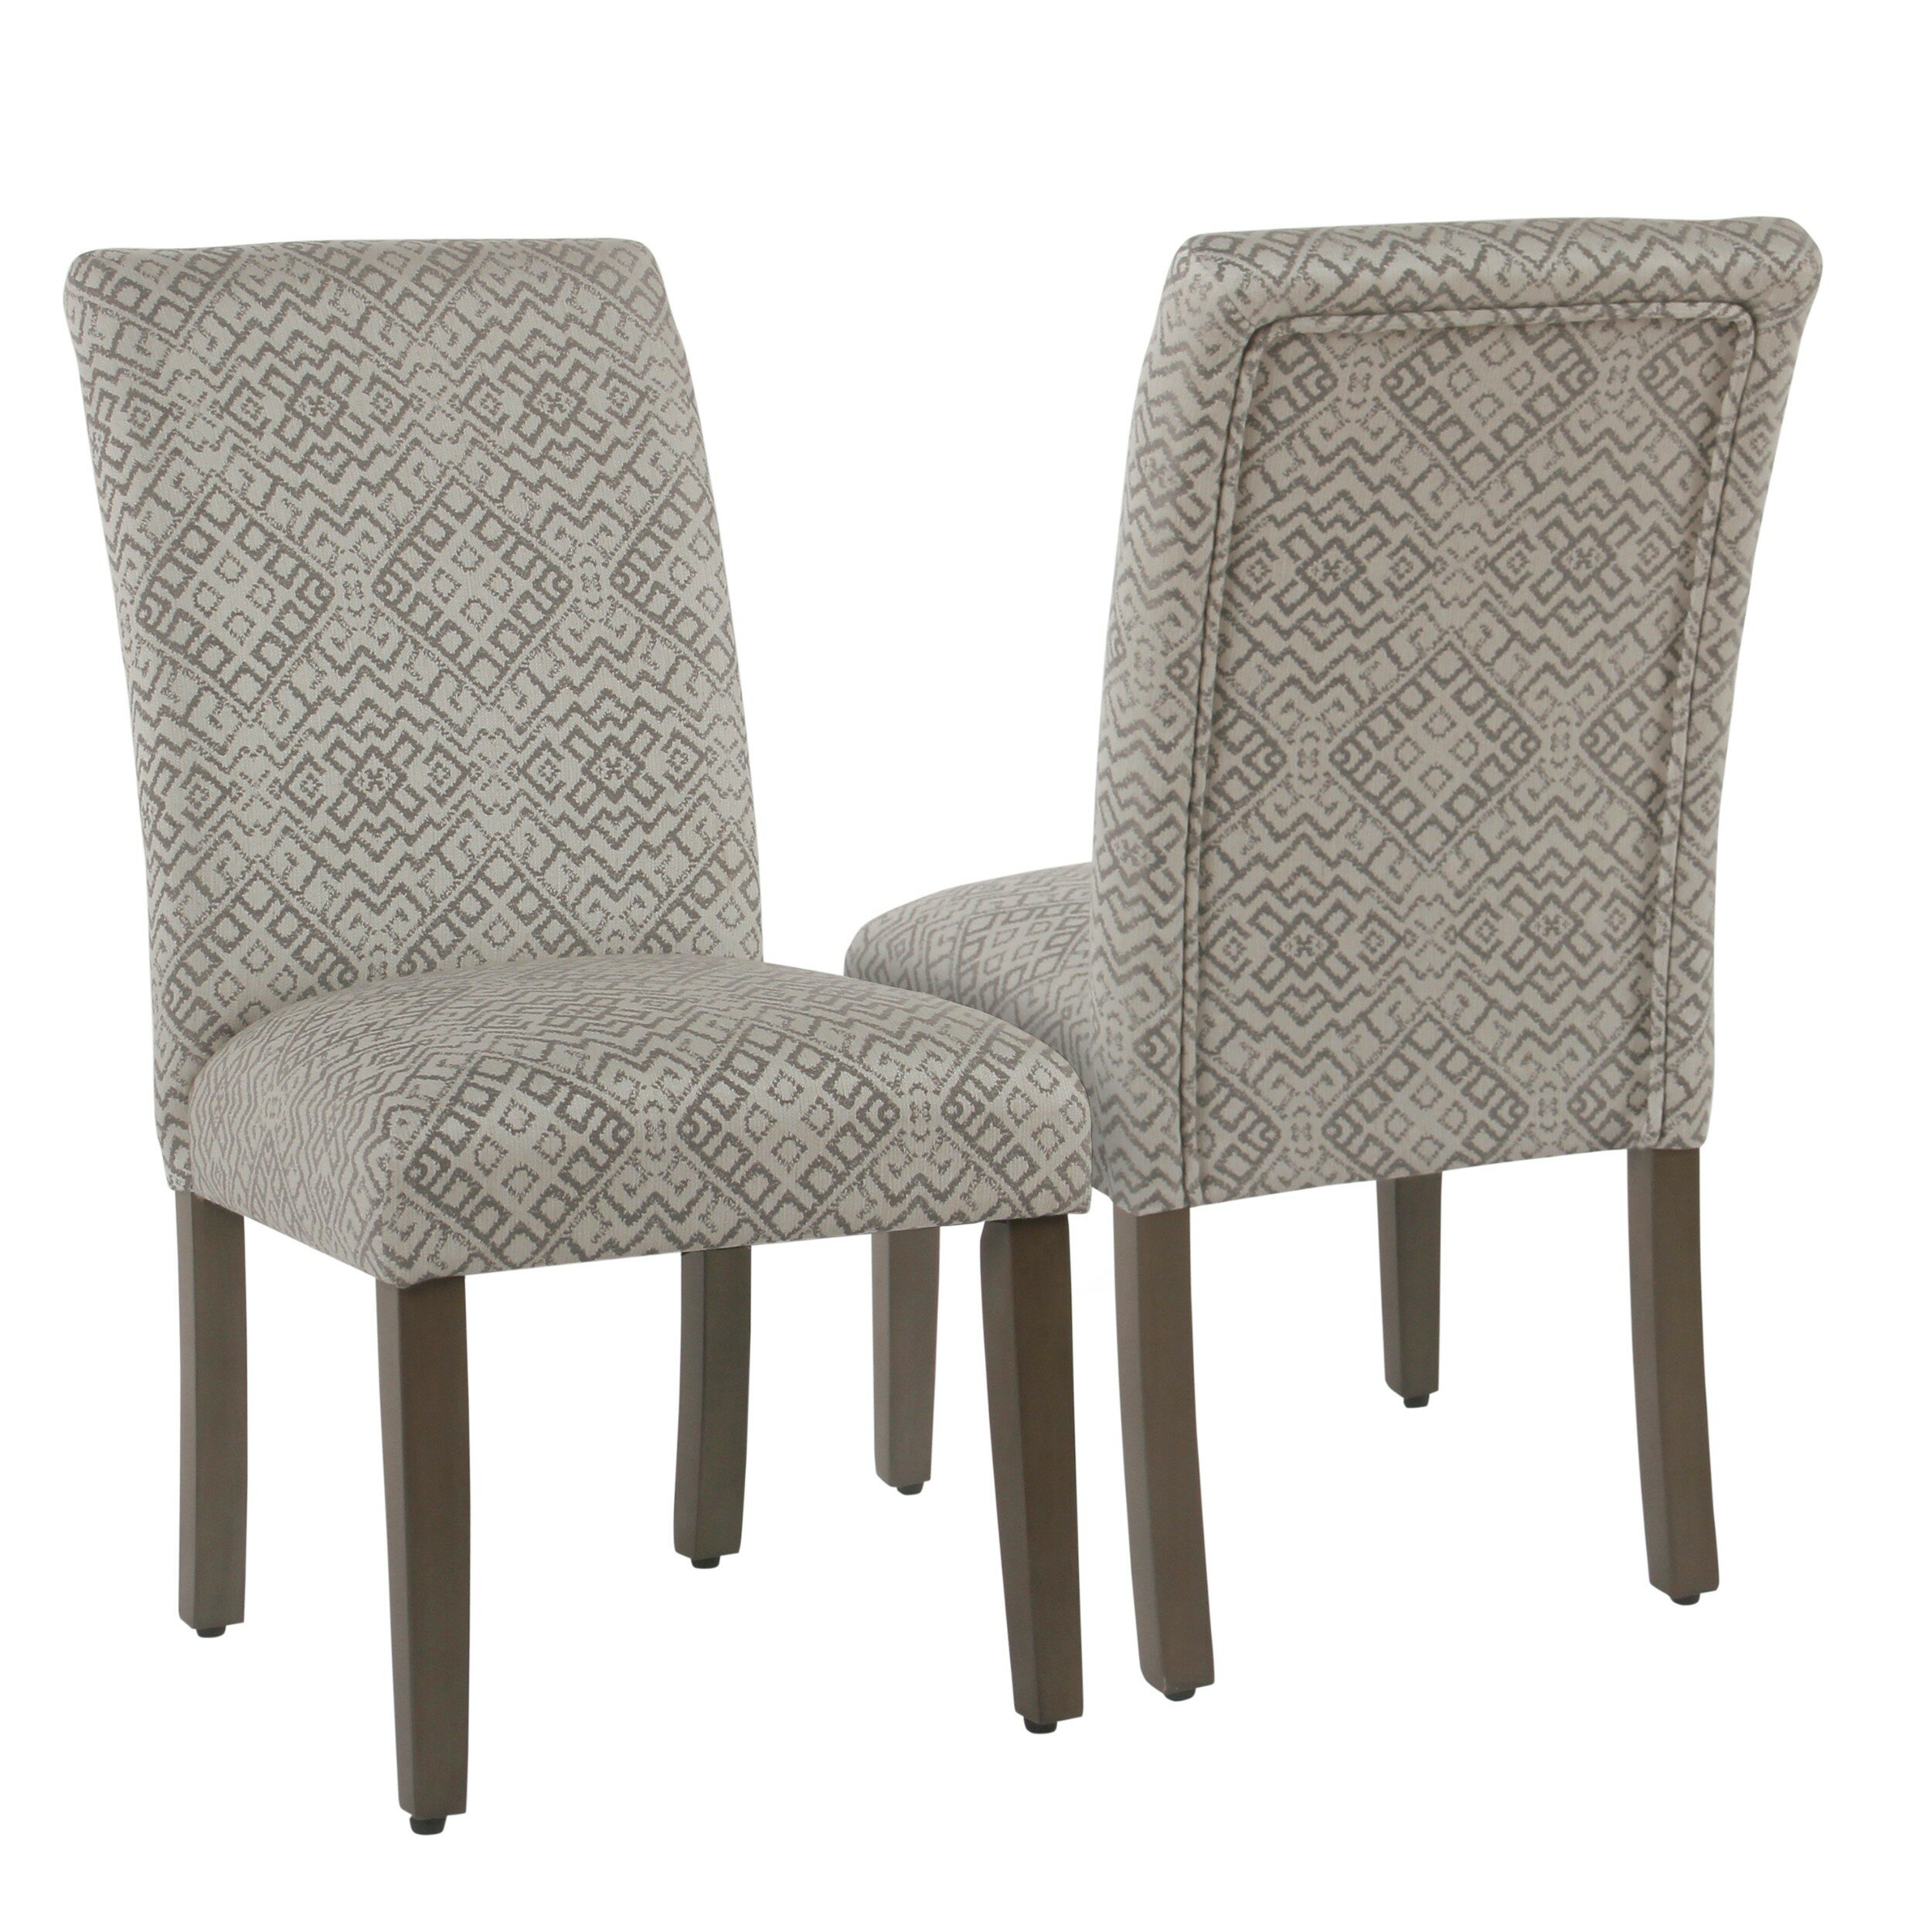 Freetown Upholstered Dining Chair For Aime Upholstered Parsons Chairs In Beige (View 7 of 15)